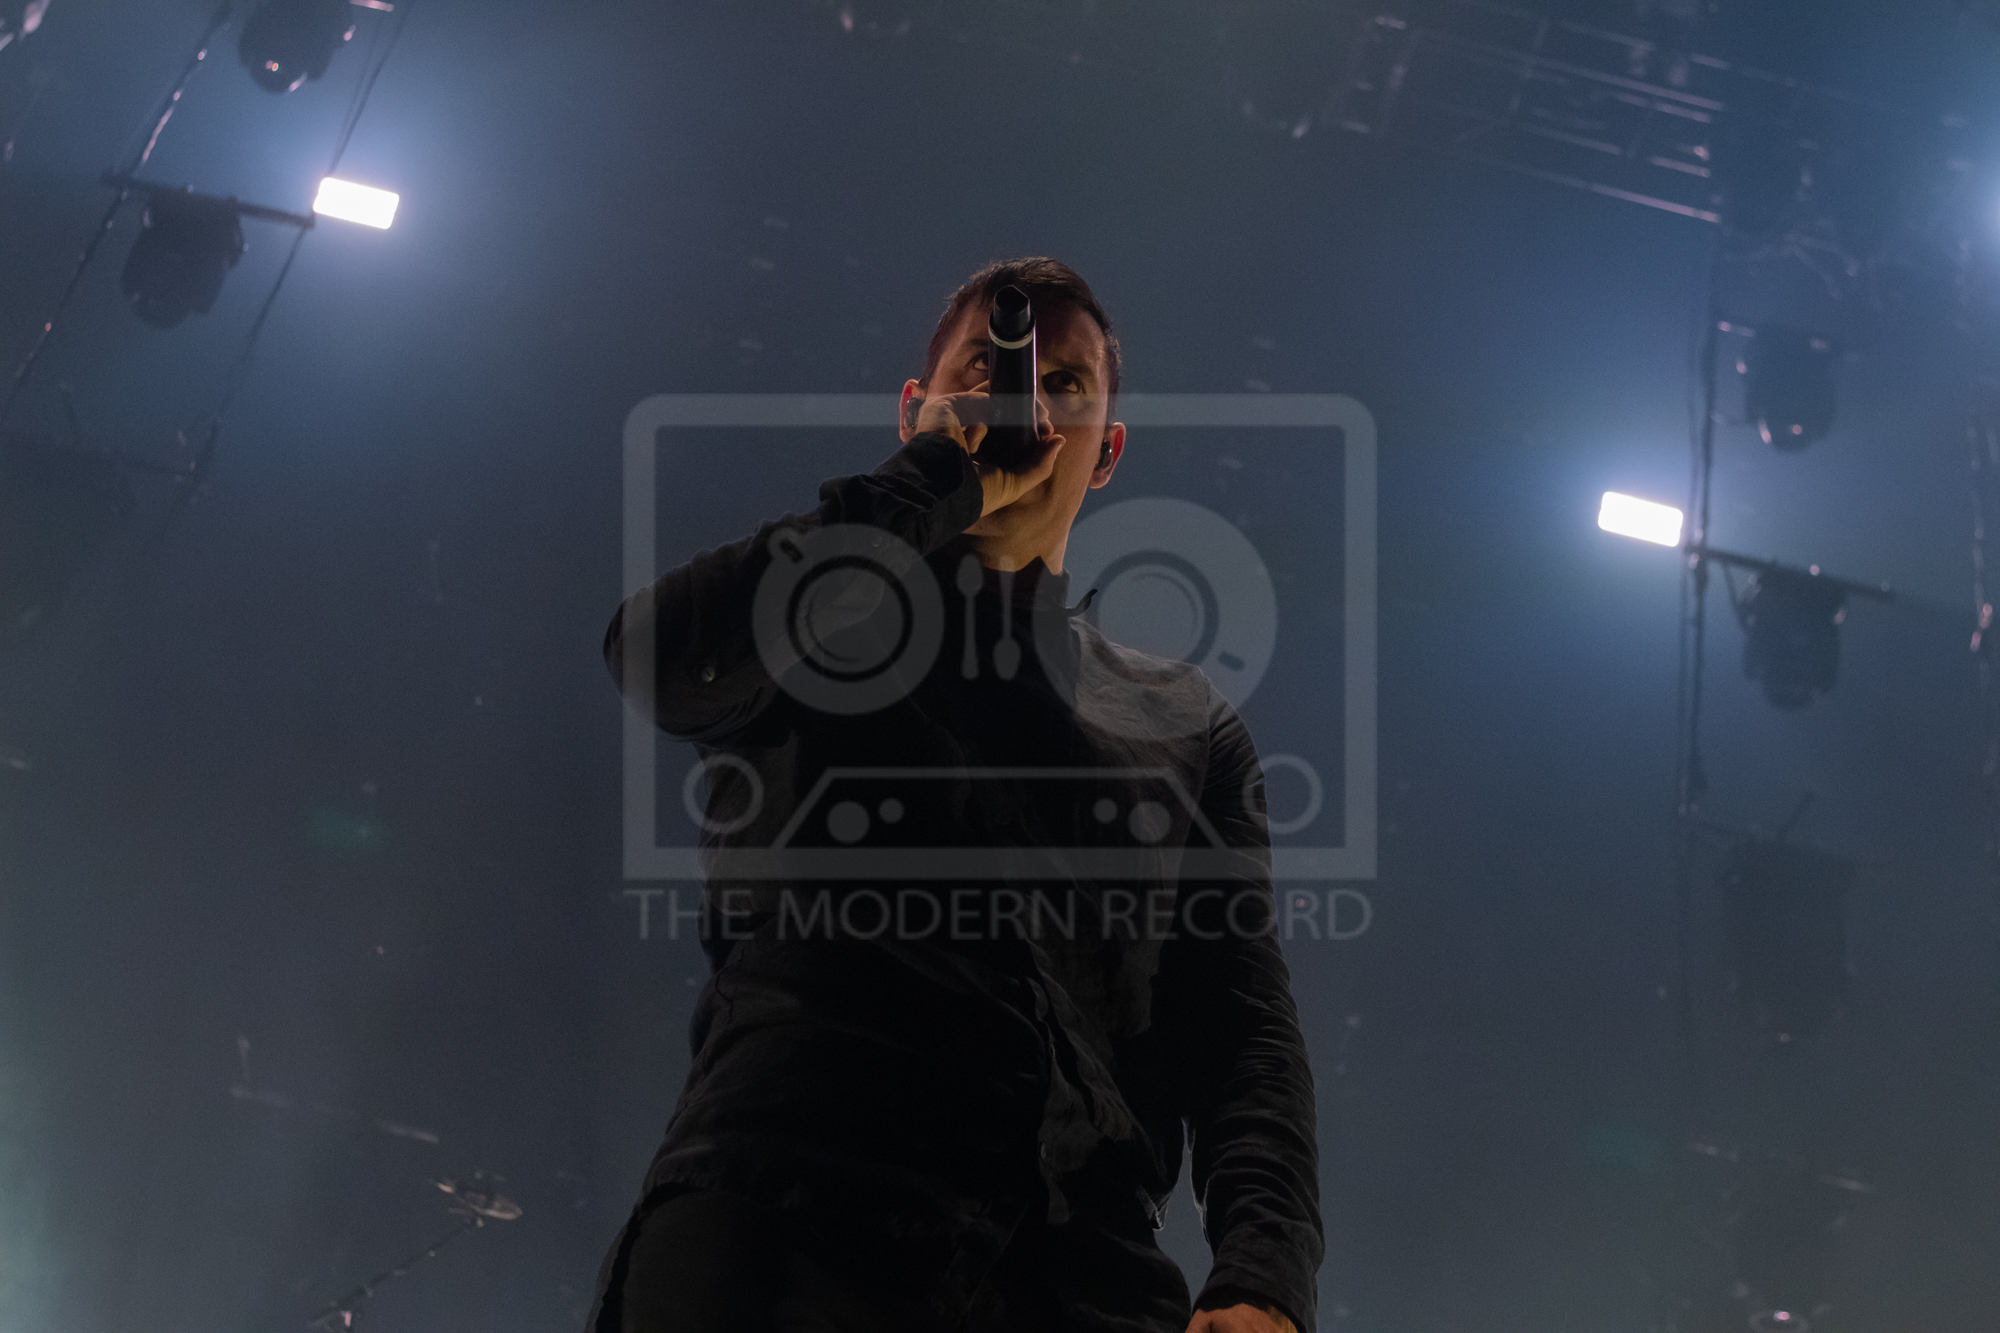 12 - Parkway Drive - O2 Apollo, Manchester - 29-01-19 Picture by Will Gorman Photo.JPG